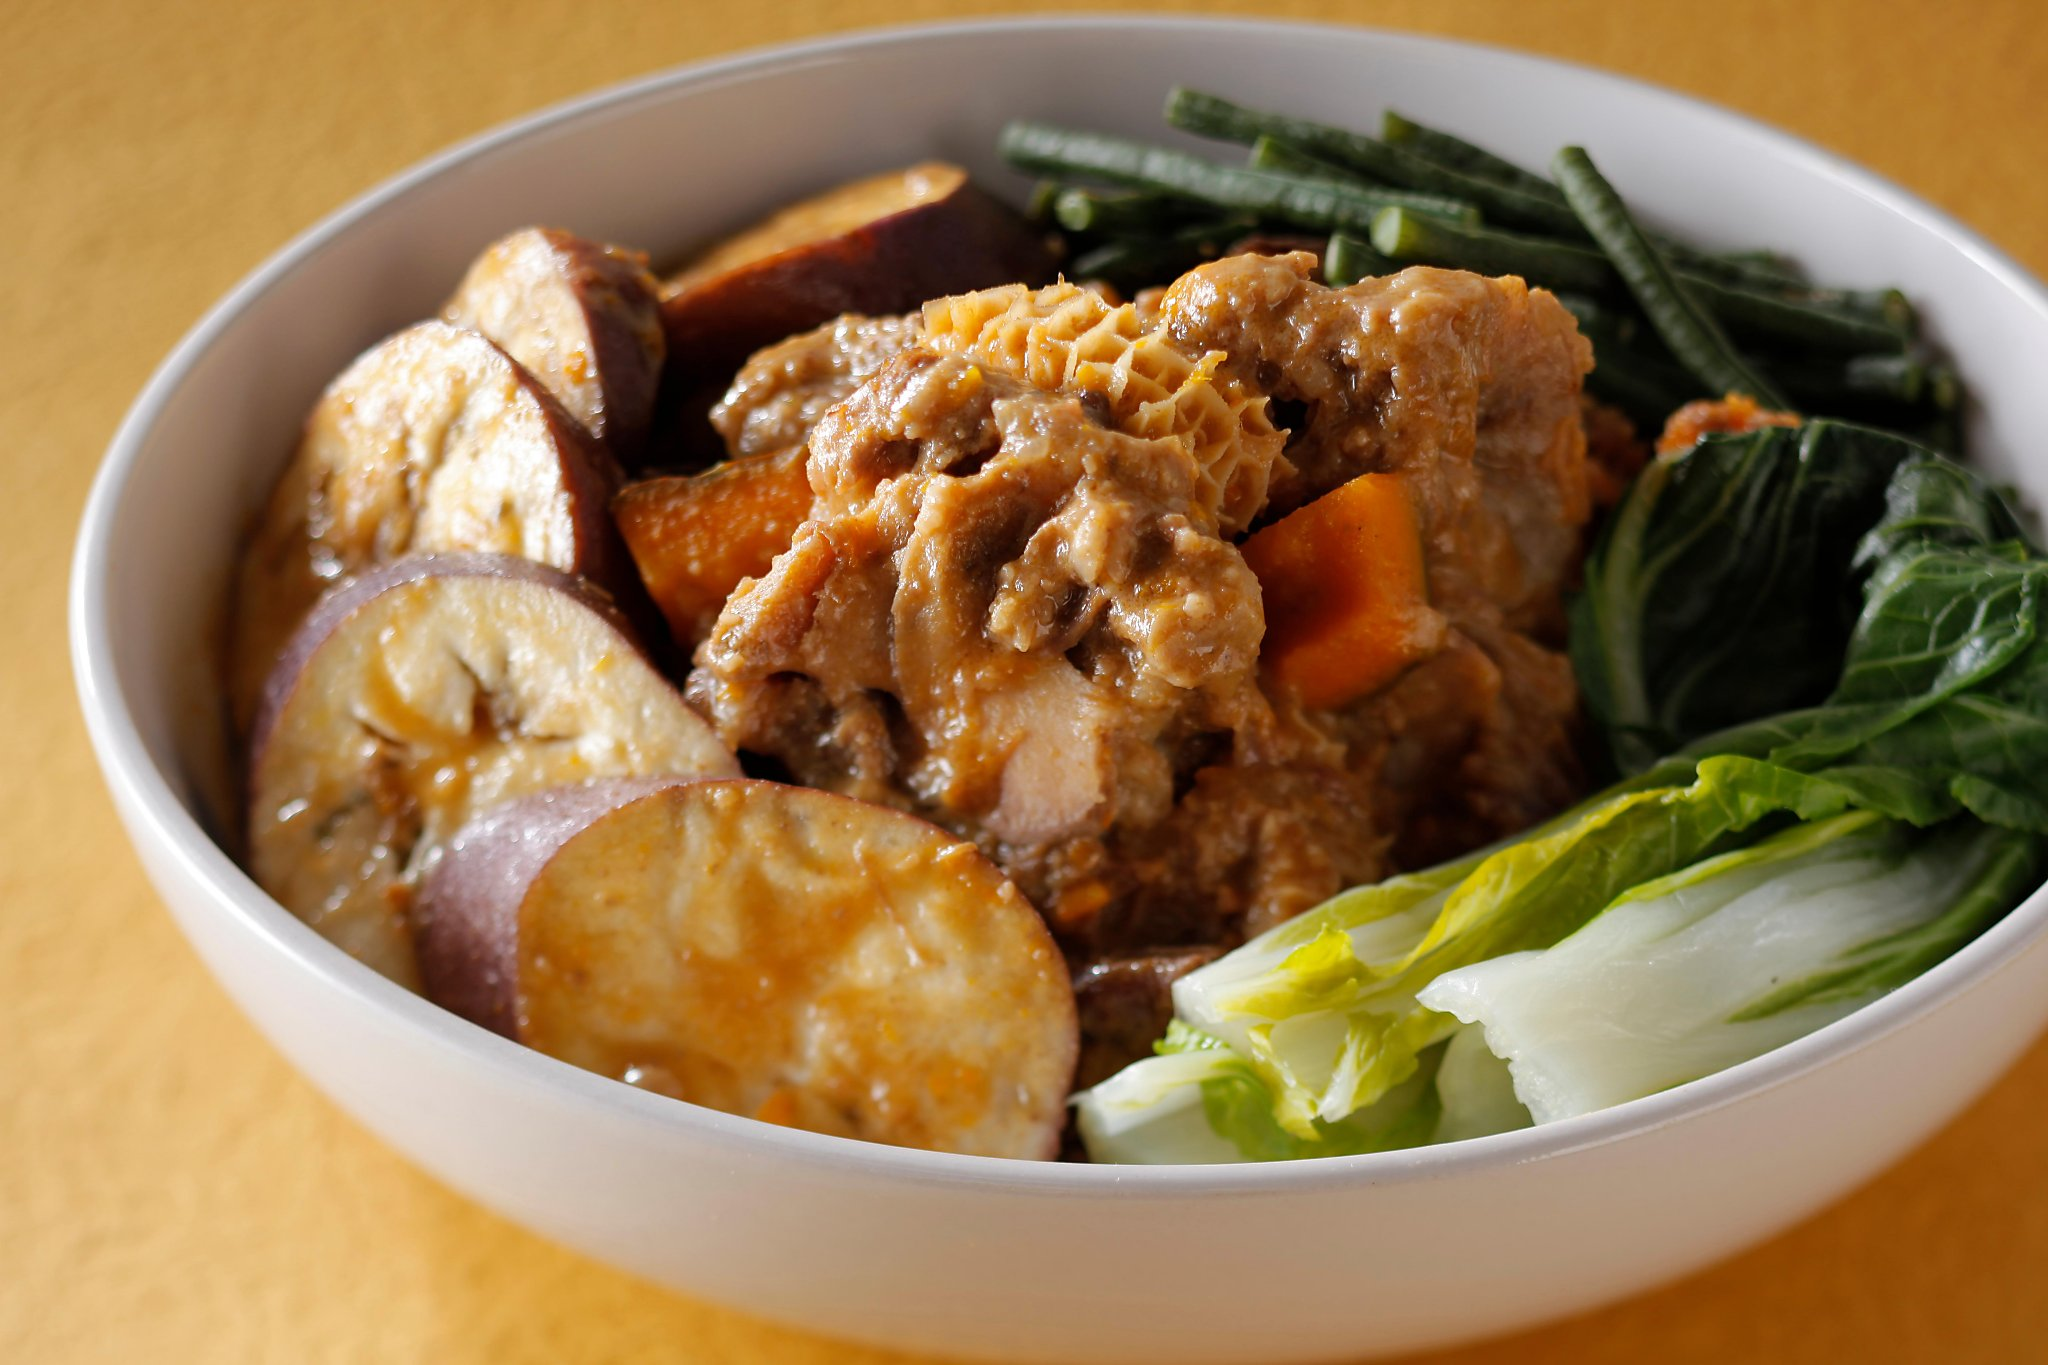 5 recipes to bring comfort, from Hainanese chicken rice to stewed short ribs with adobo